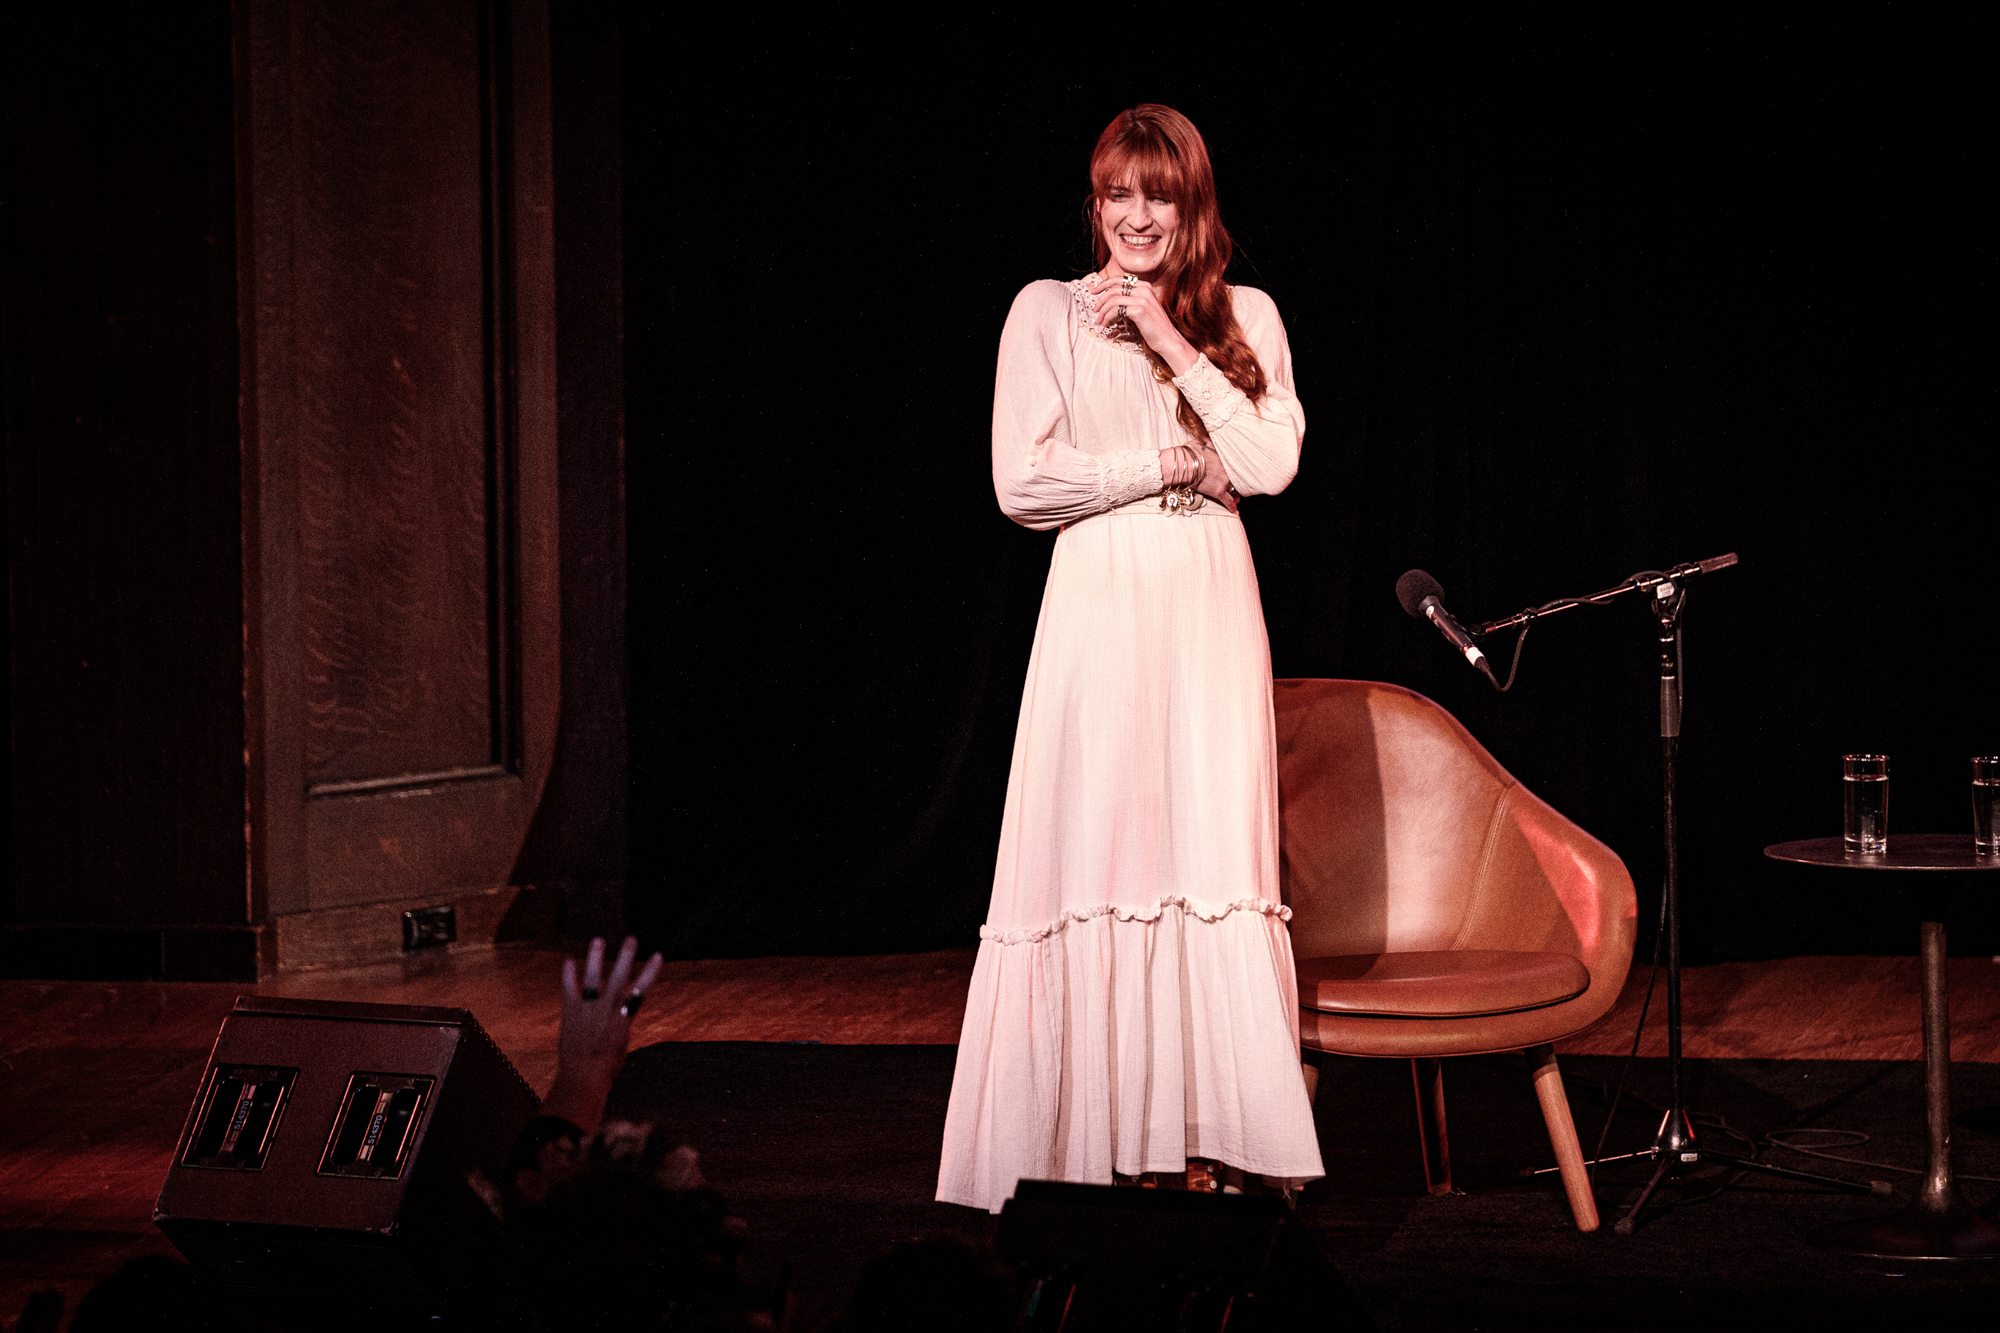 Florence Welch participating in a New Yorker Festival talk on October 11, 2019